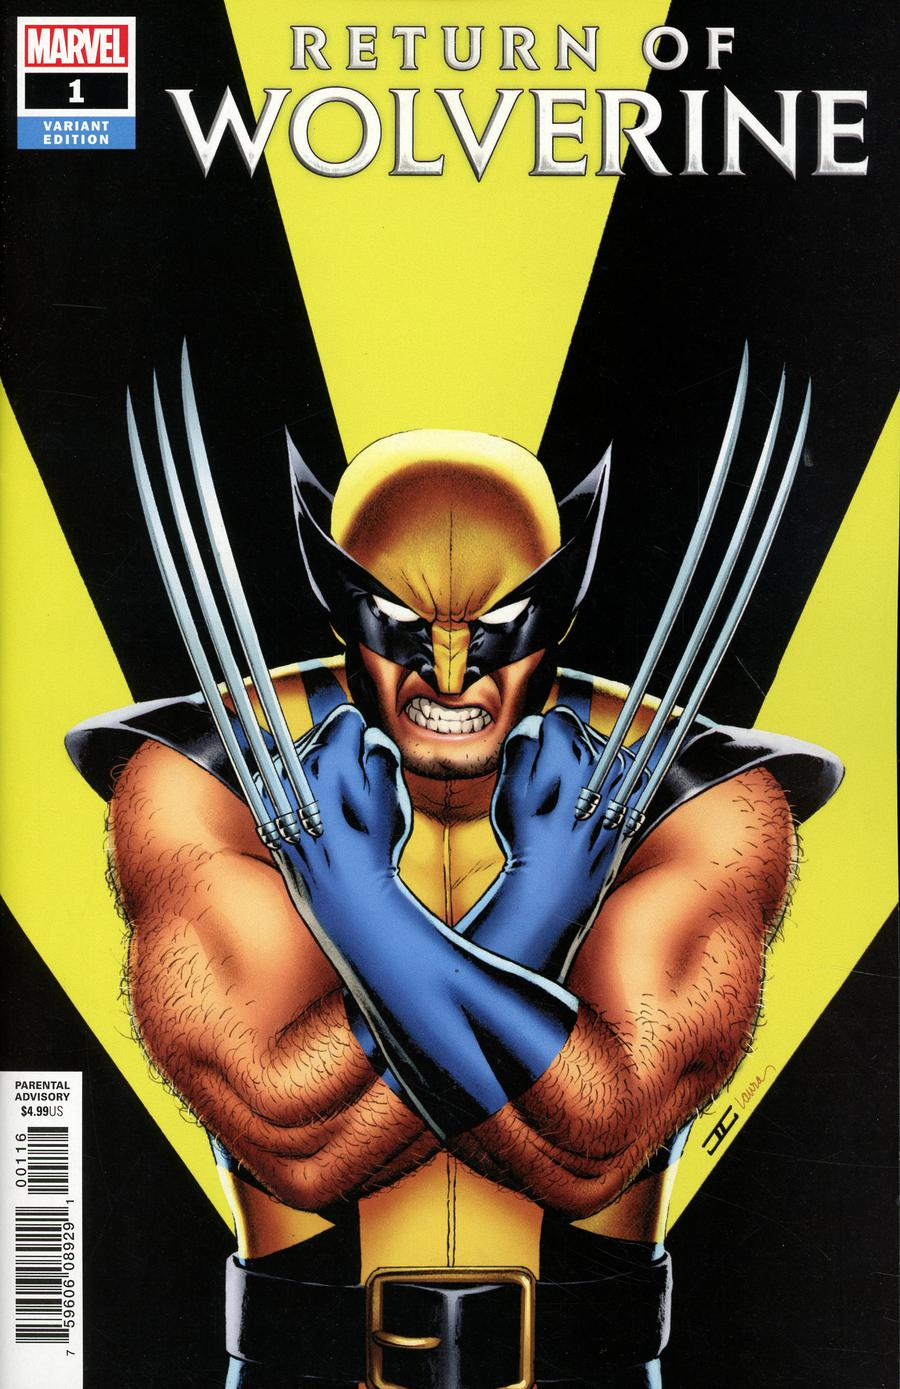 Return Of Wolverine #1 Cover N Incentive John Cassaday Variant Cover